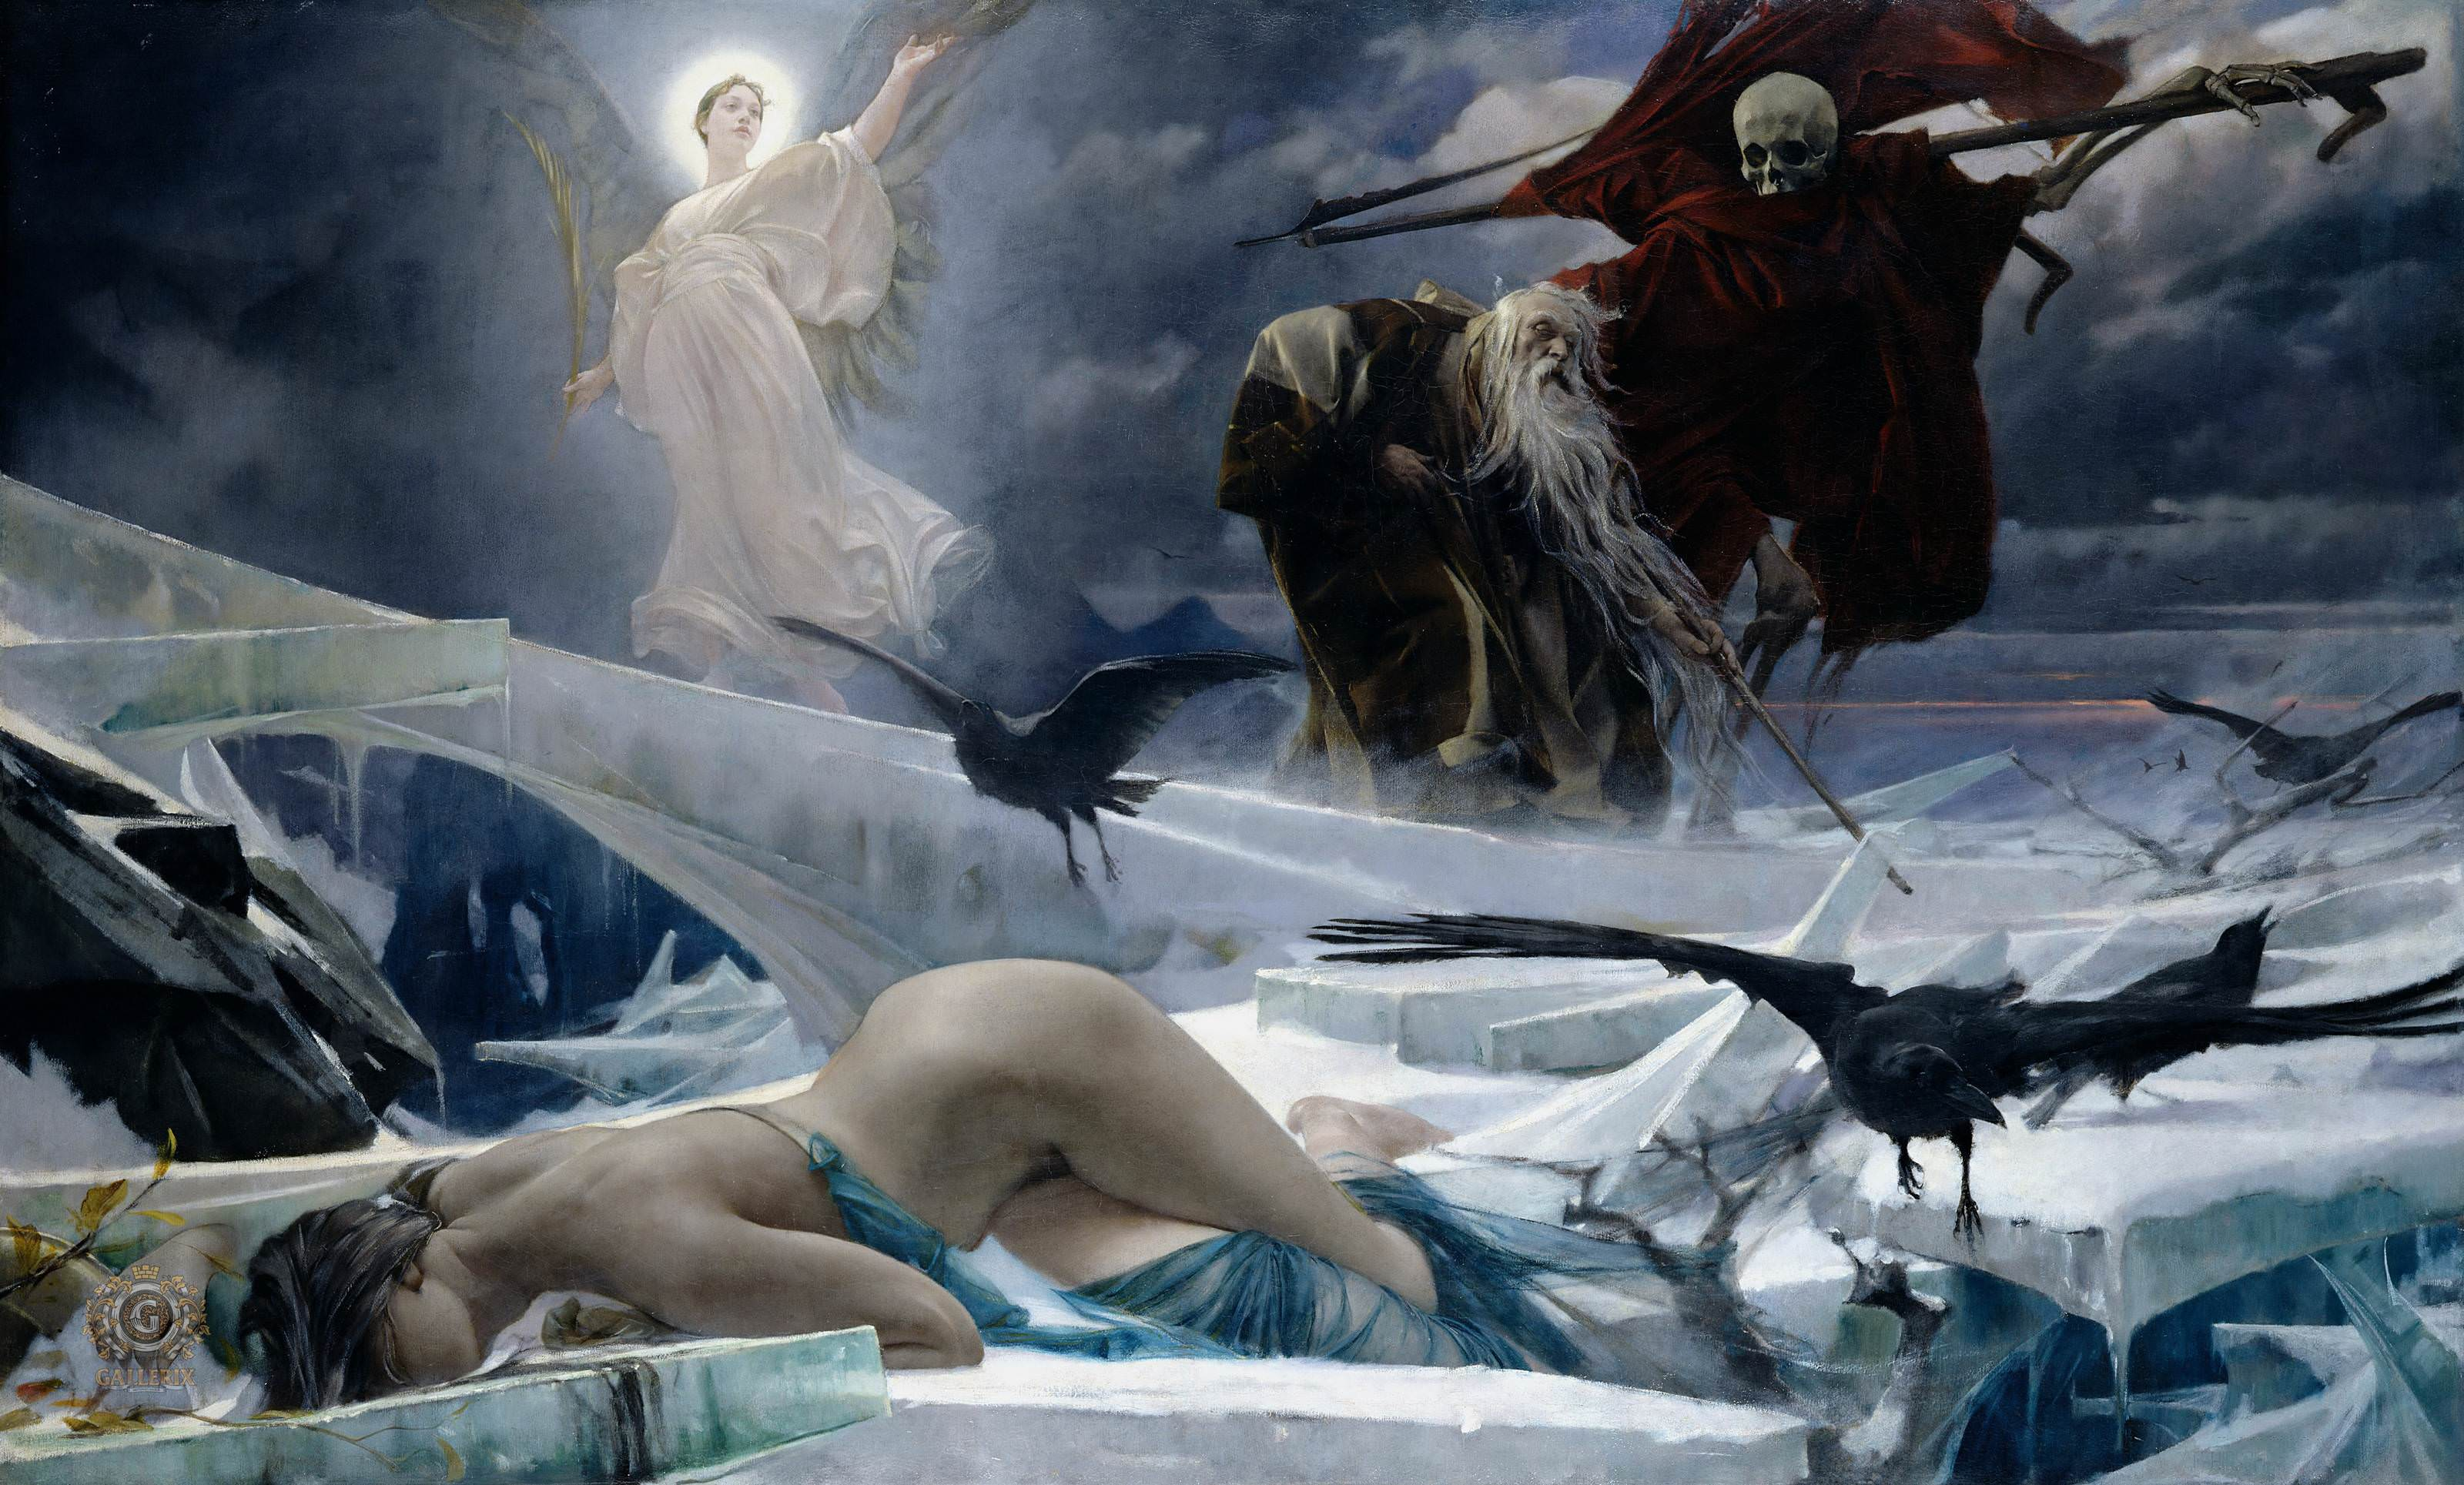 Adolph Hirémy-Hirschl | Ahasuerus at the End of the World | 1888